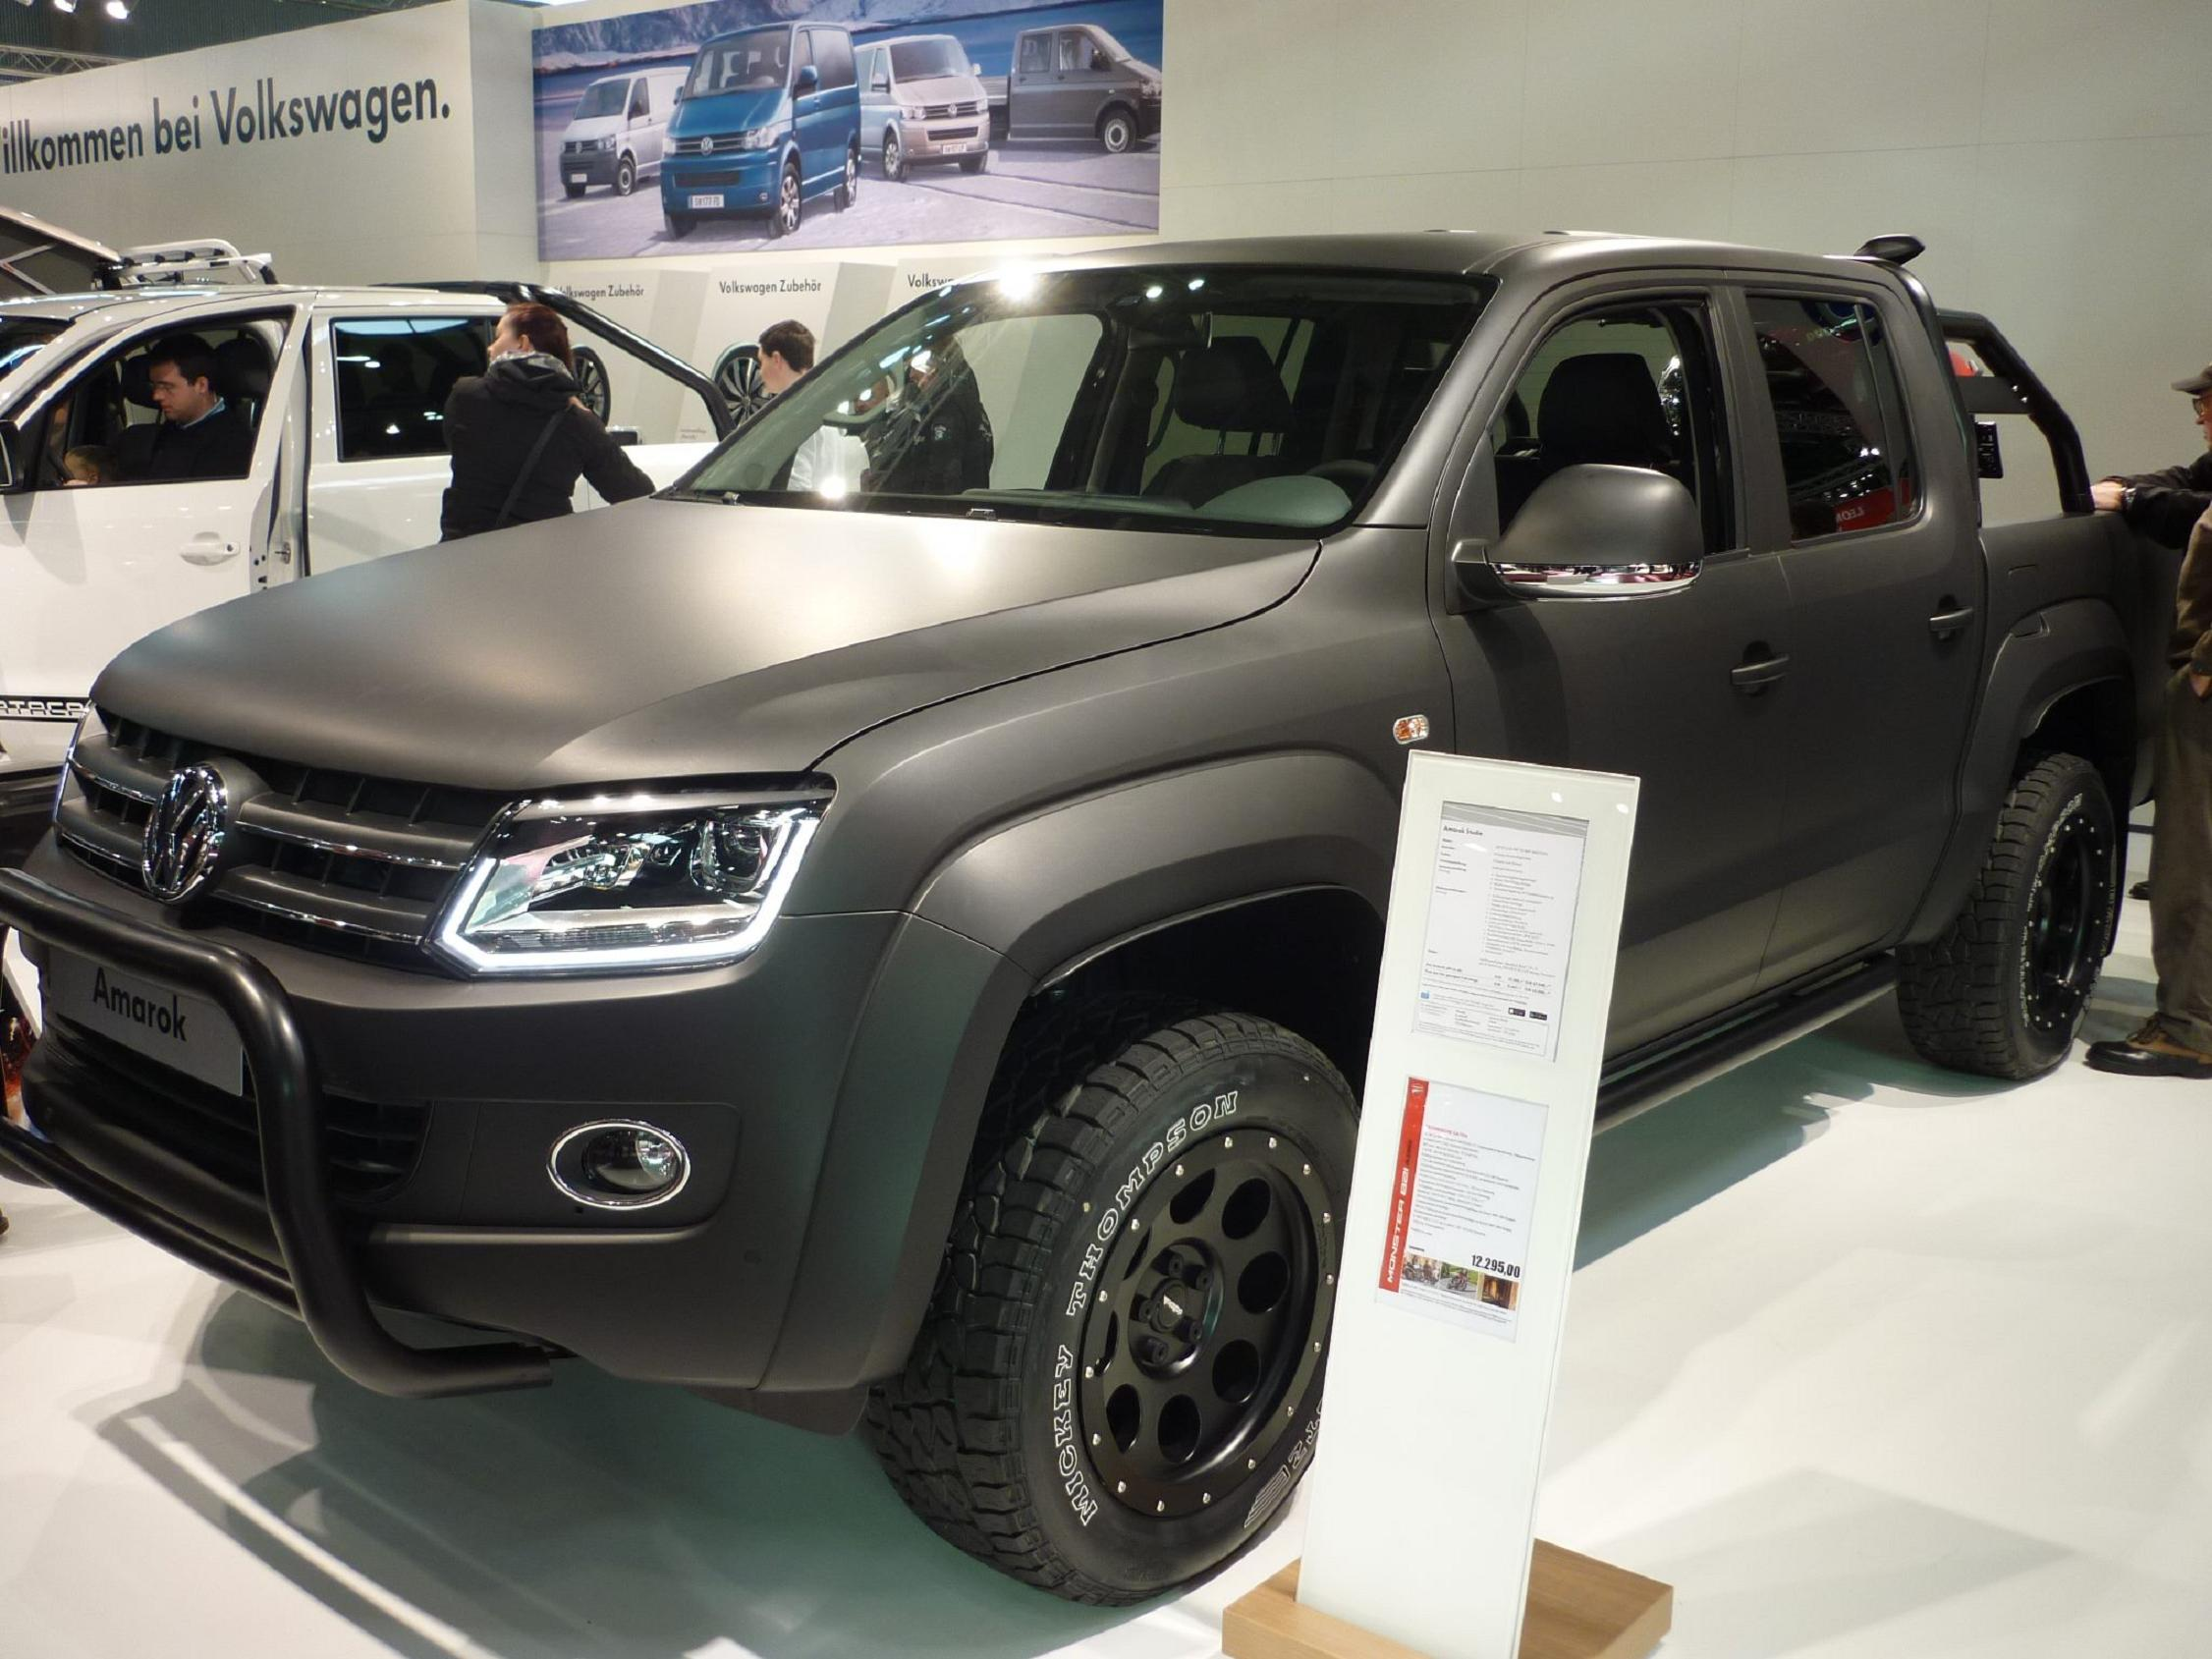 VW-Amarok tuned by delta4x4